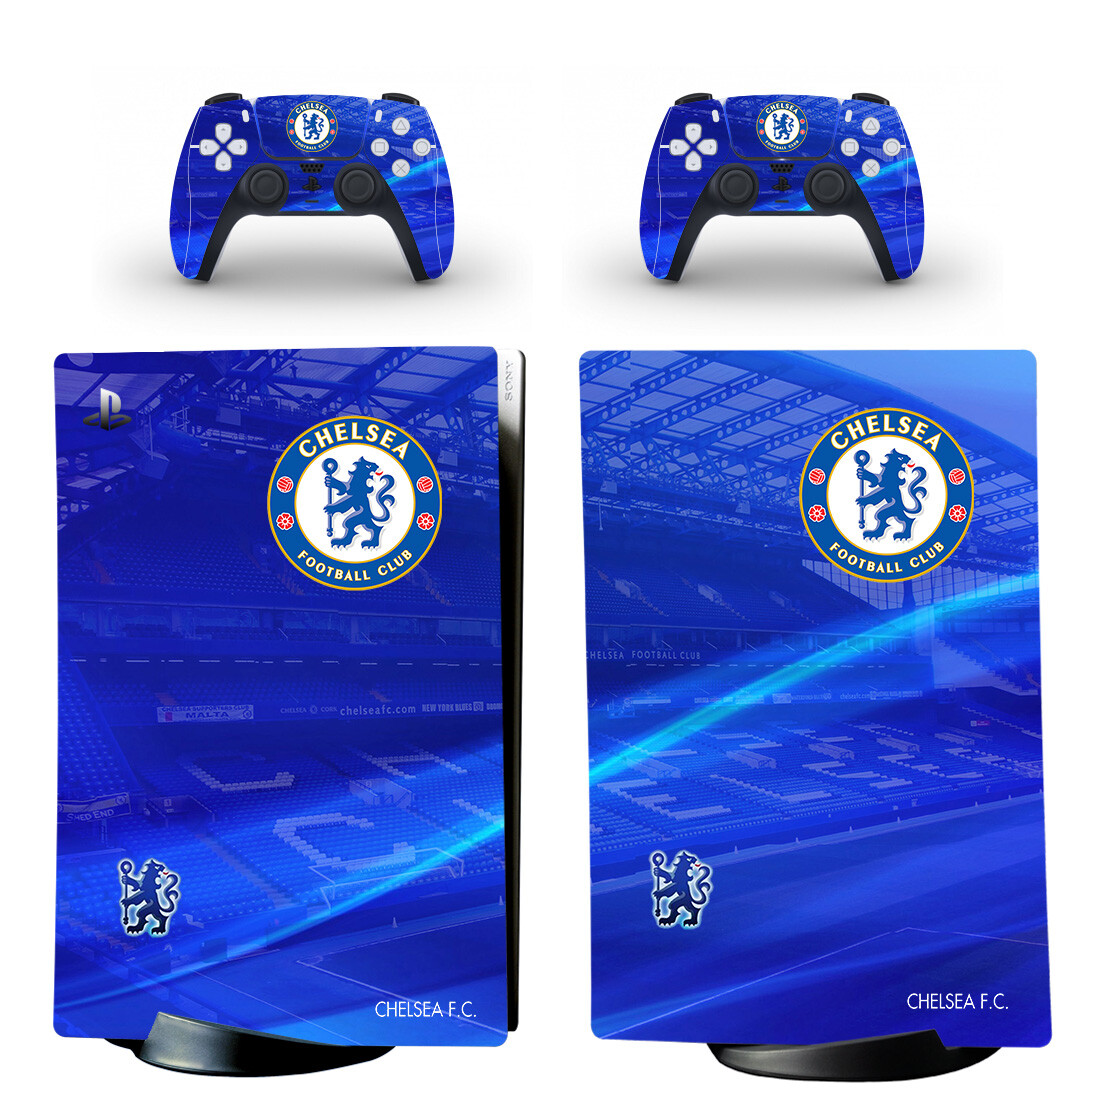 Chelsea Football Club Sticker Decal For PS5 Digital Edition And Controllers